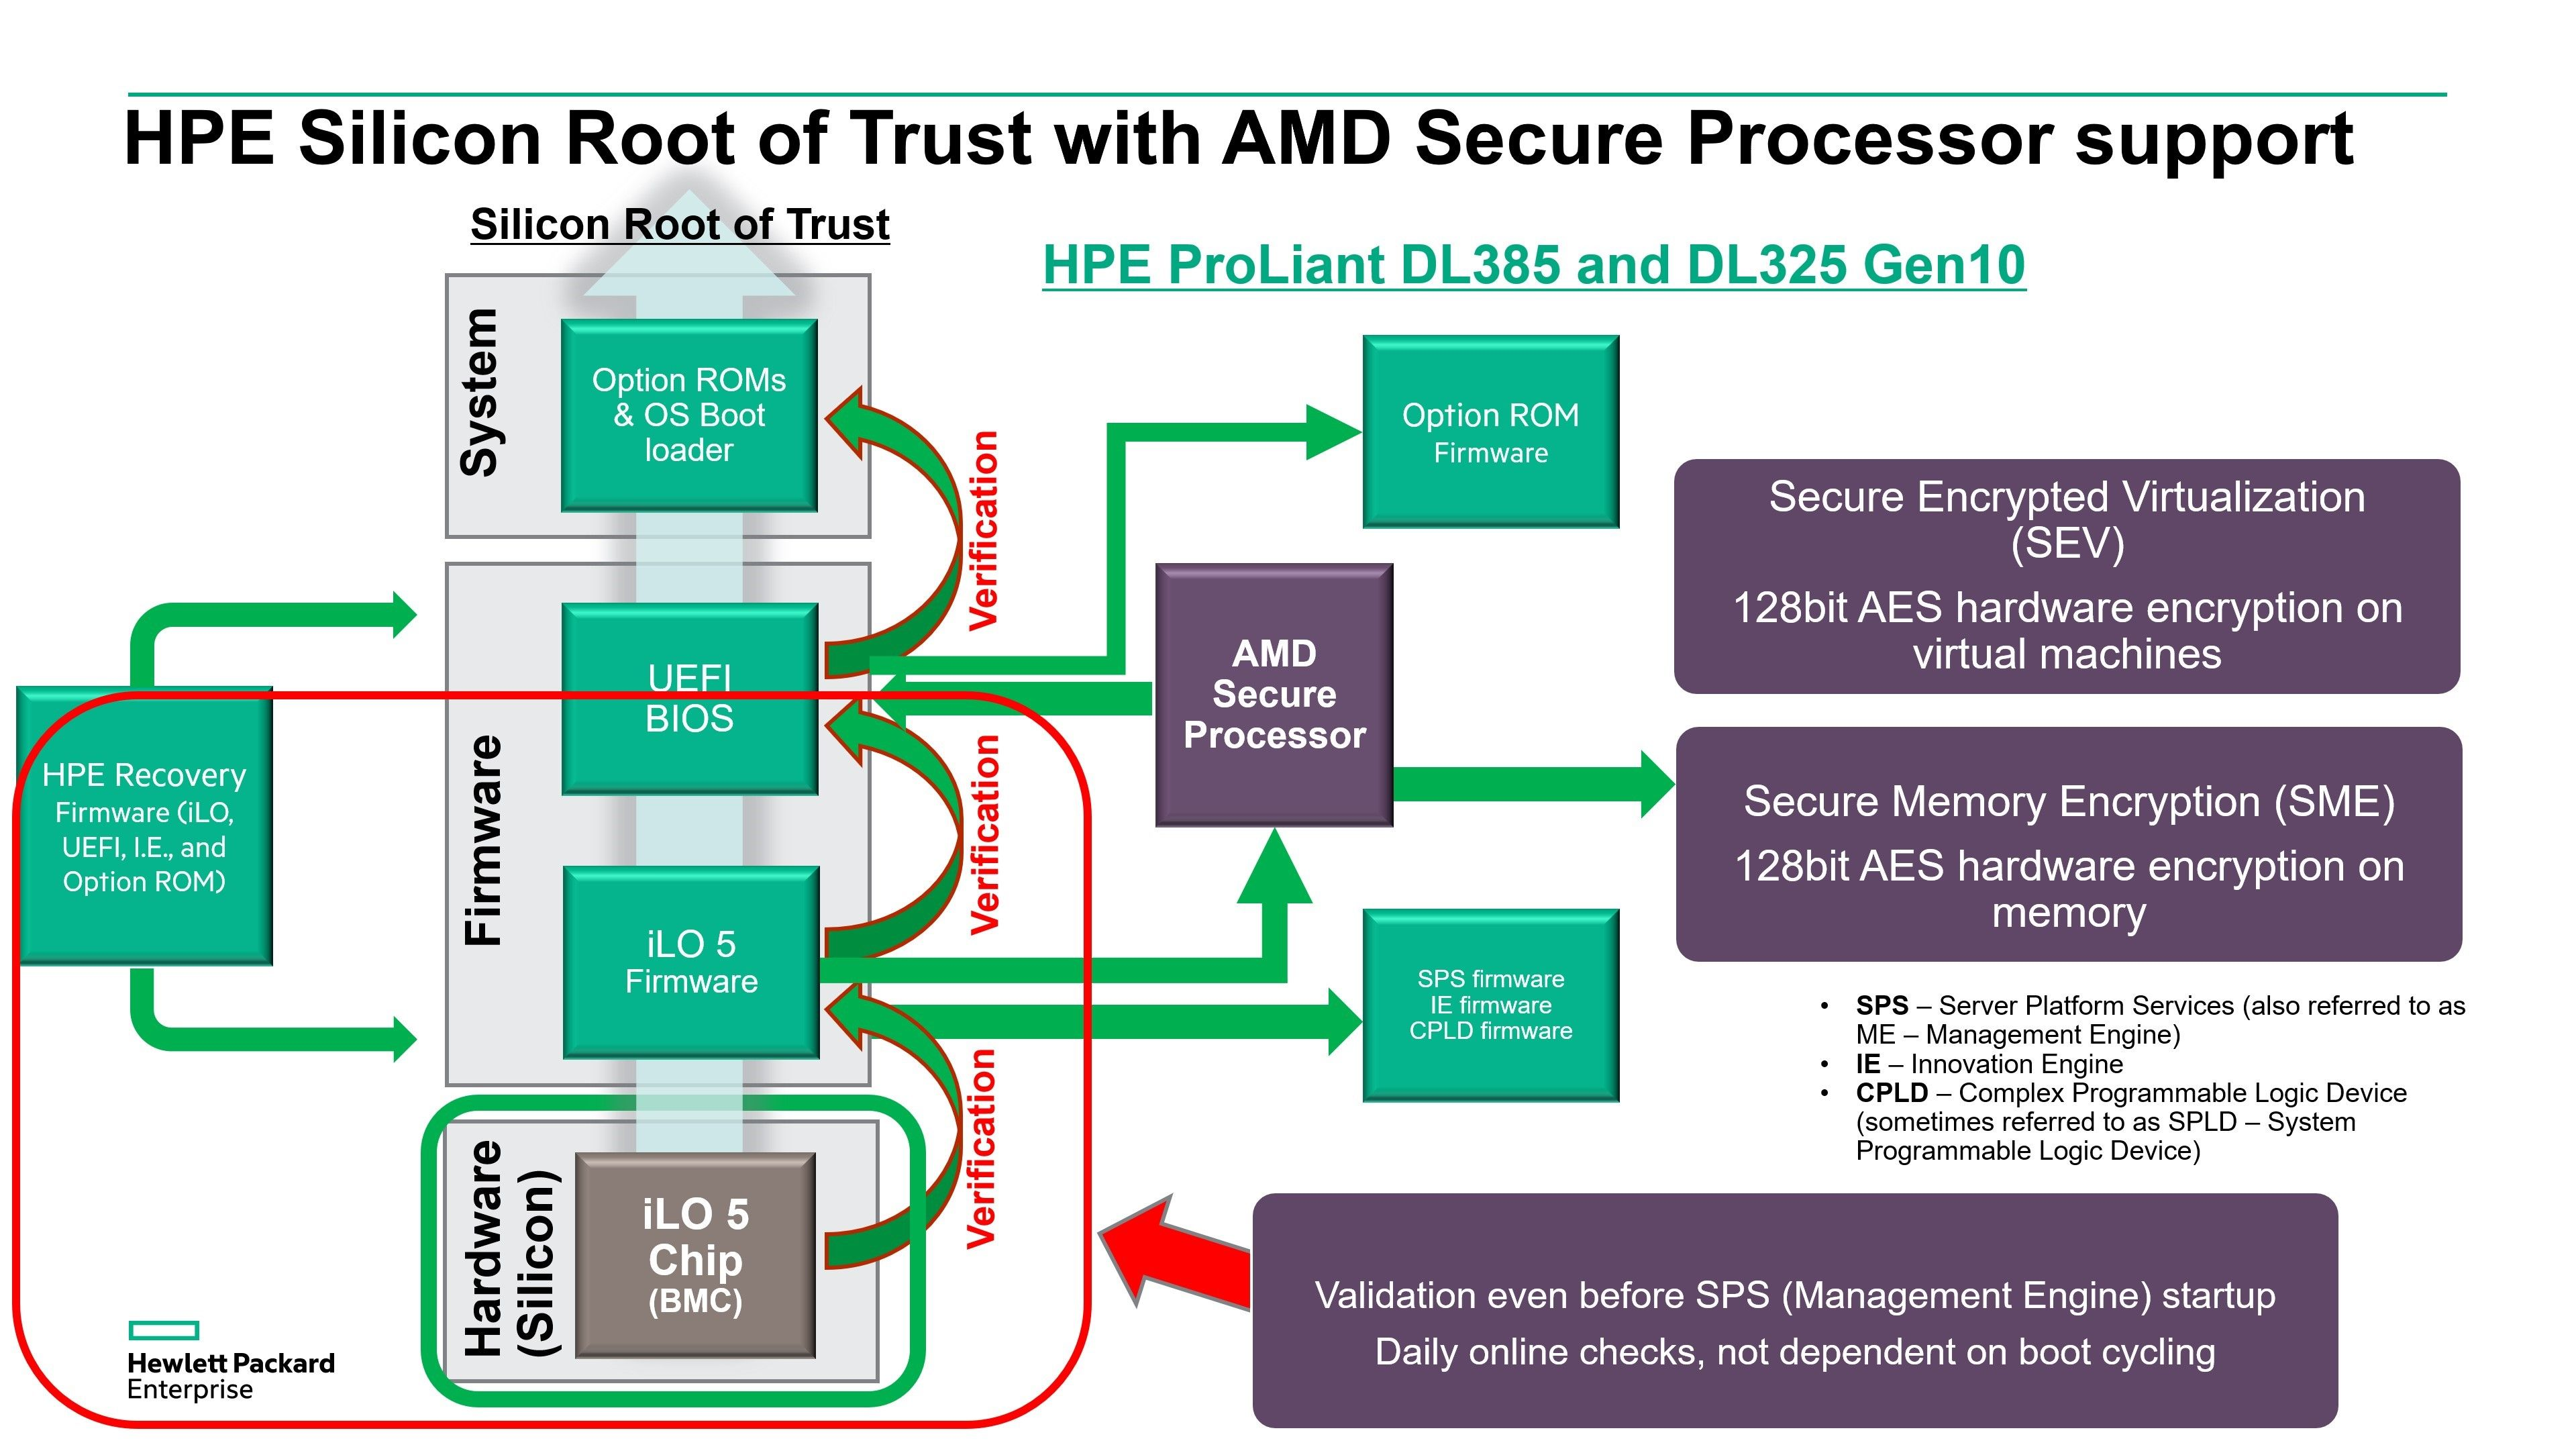 https://community.hpe.com/t5/Alliances/Advanced-Security-of-HPE-Servers-with-AMD-EPYC-processors/ba-p/7039600?lightbox-message-images-7039600=108890iD25E608F8A714877#.Xa25C56SnAR